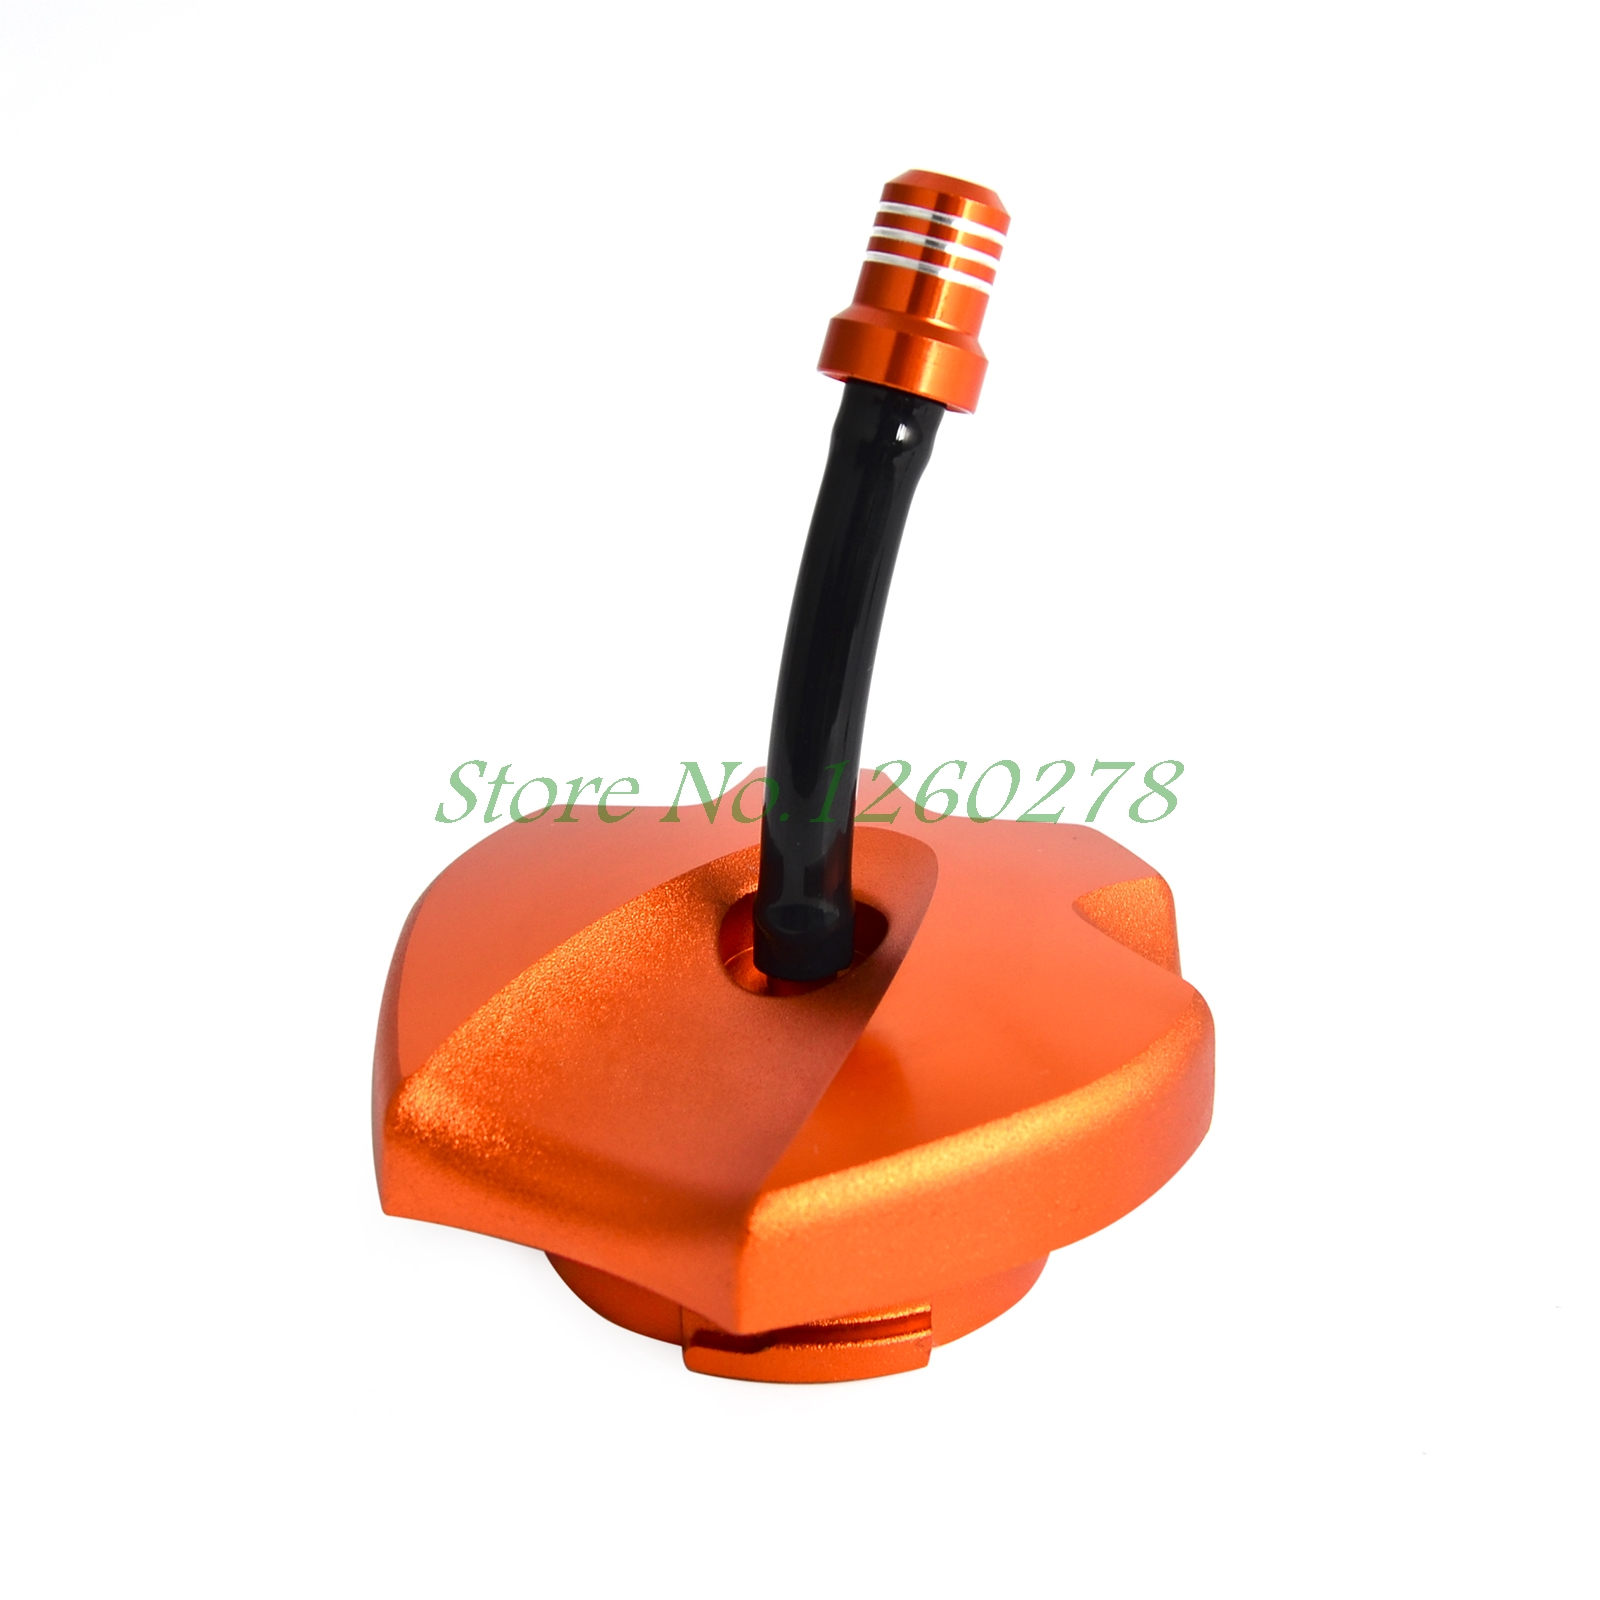 Motorcycle Gas Fuel Petrol Tank Cap Cover For Husqvarna TE FE 125-501 2014-2017 Husqvarna TX FX 125 200 300 350 450 2017 fuel gas petrol tank cap with lock keys